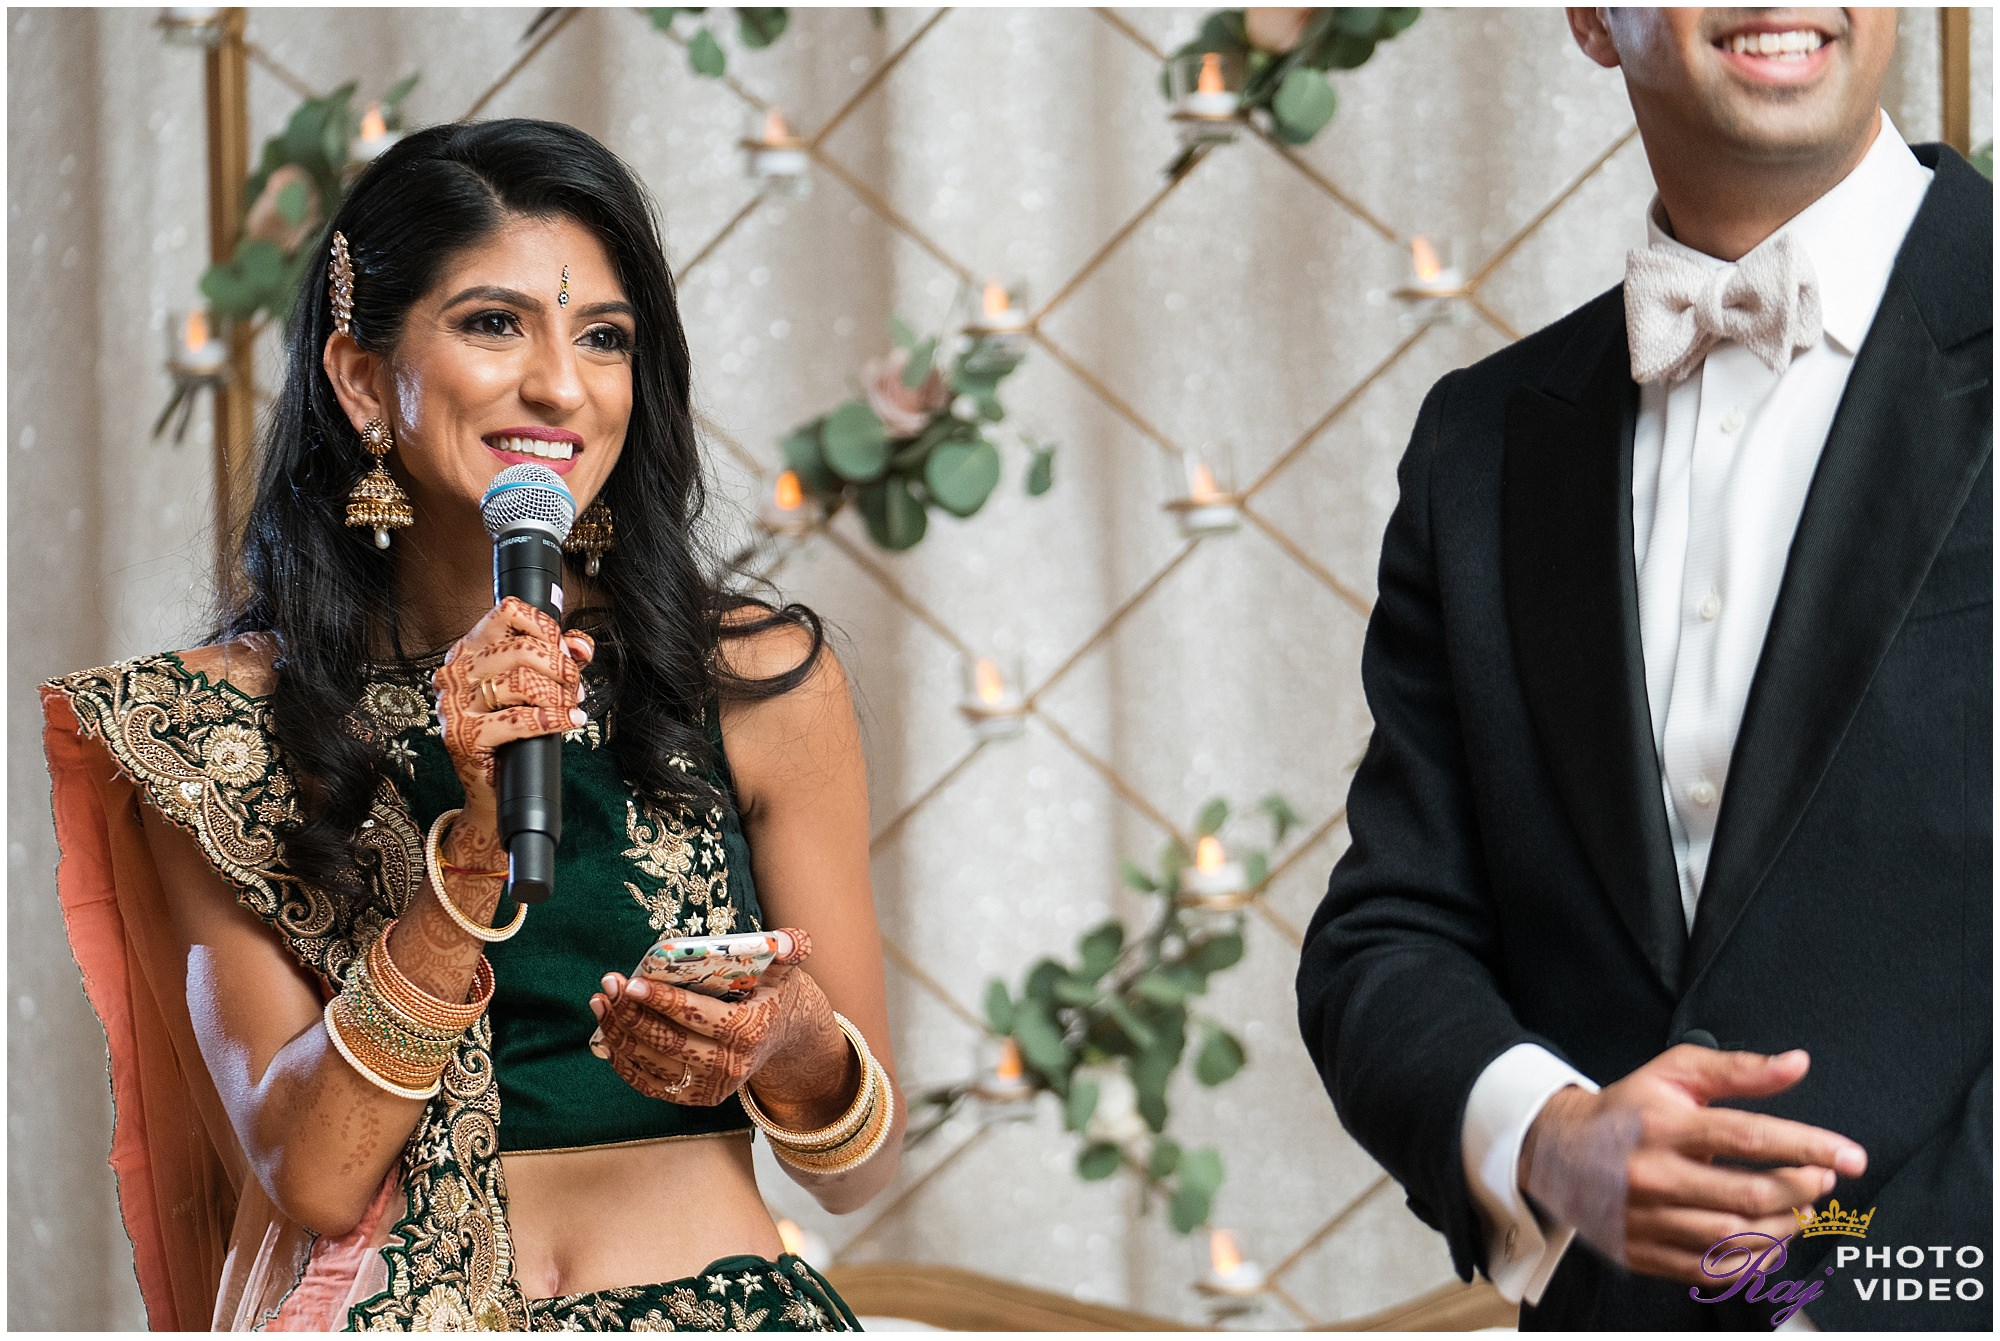 Scottsdale_Marriott_at_McDowell_Mountains_Arizona_Indian_Wedding_Sapna_Shyam-85.jpg